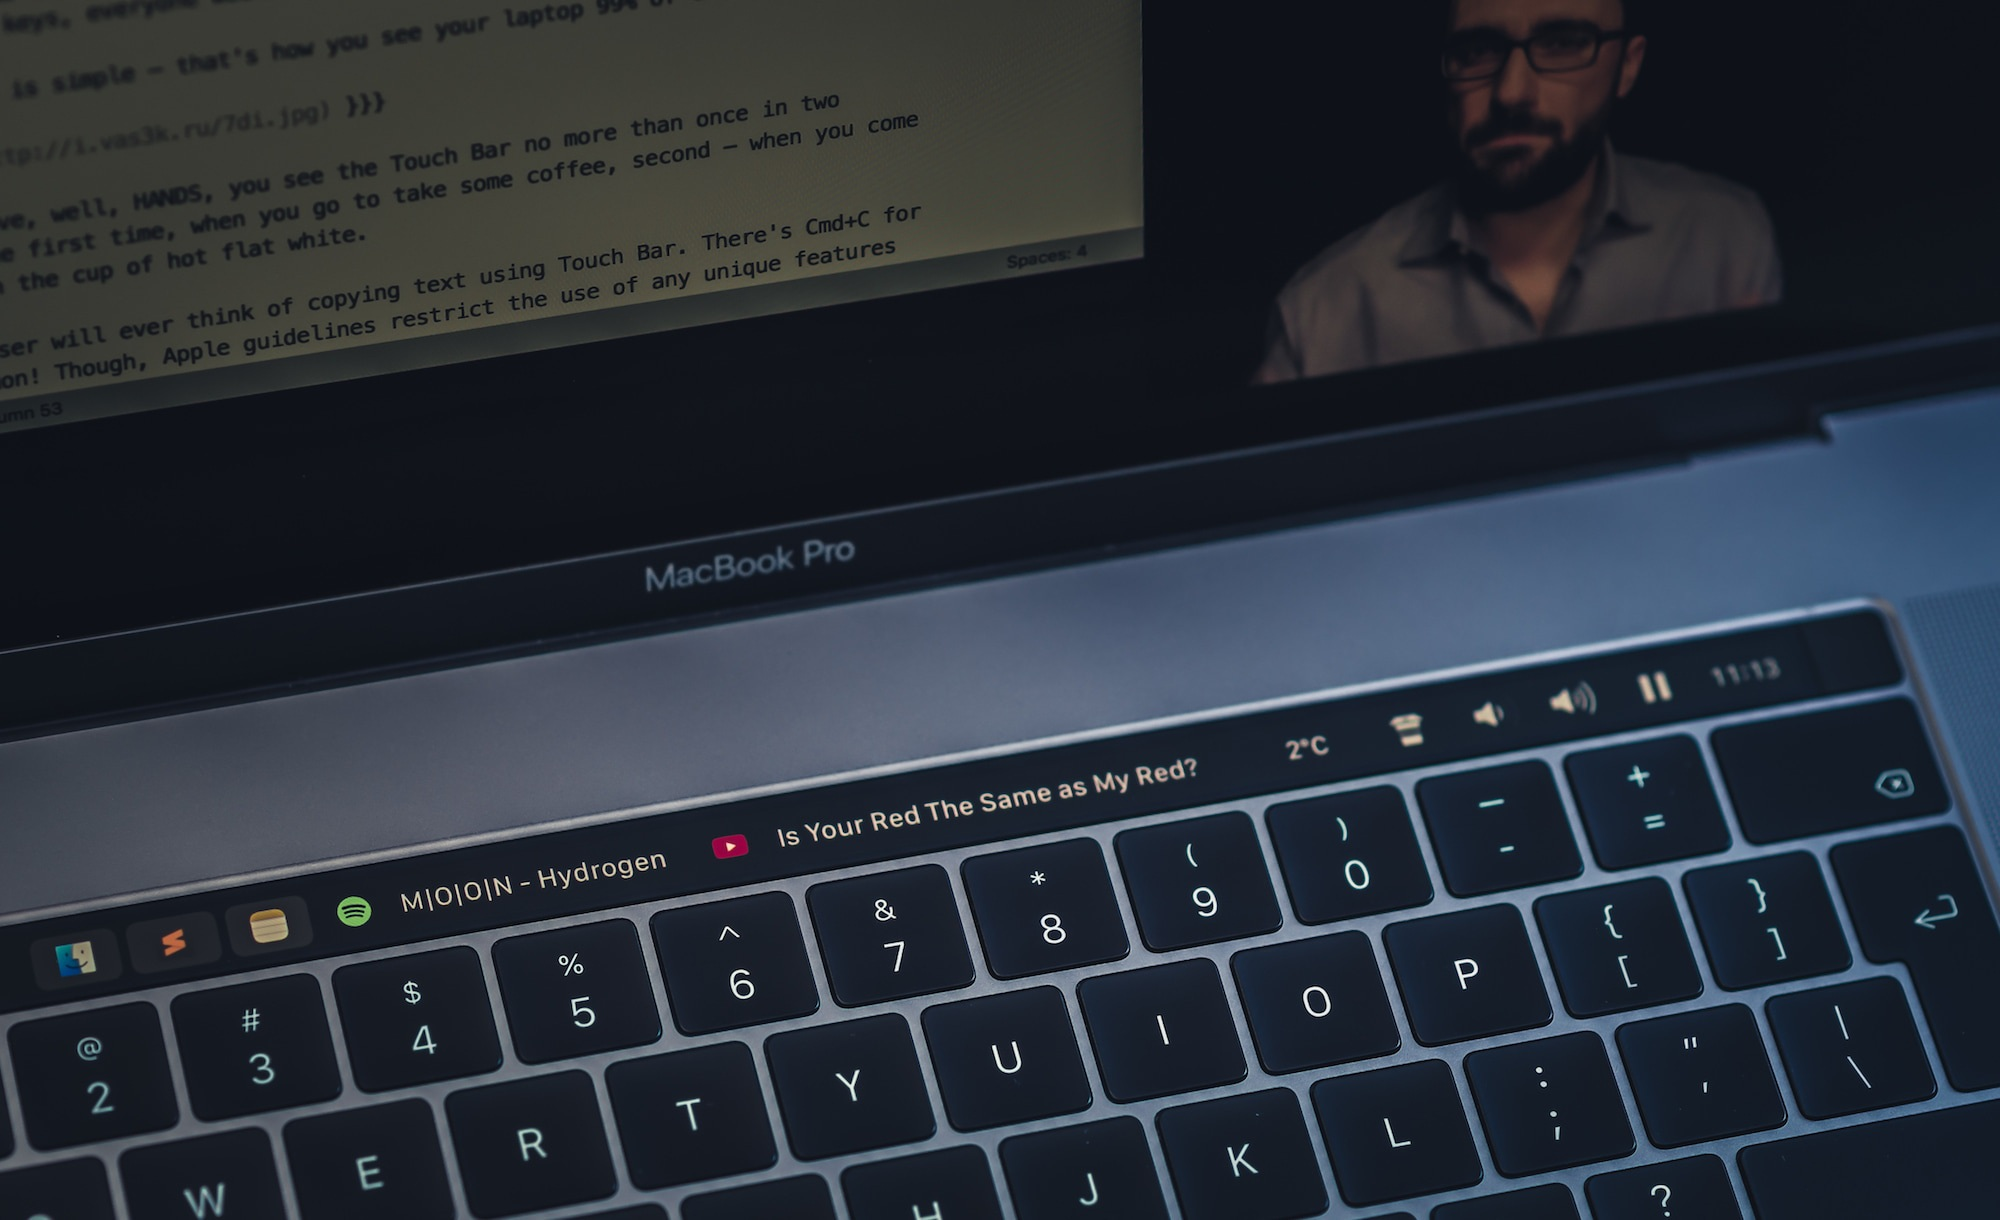 Making The Touch Bar Finally Useful By Abandoning Crappy Apple 4 Way Light Switch Wiring Diagram How To Install Youtube Of Windows Tell T If Url Starts With Https Youtubecom Watch Then Return Name As Text End Repeat